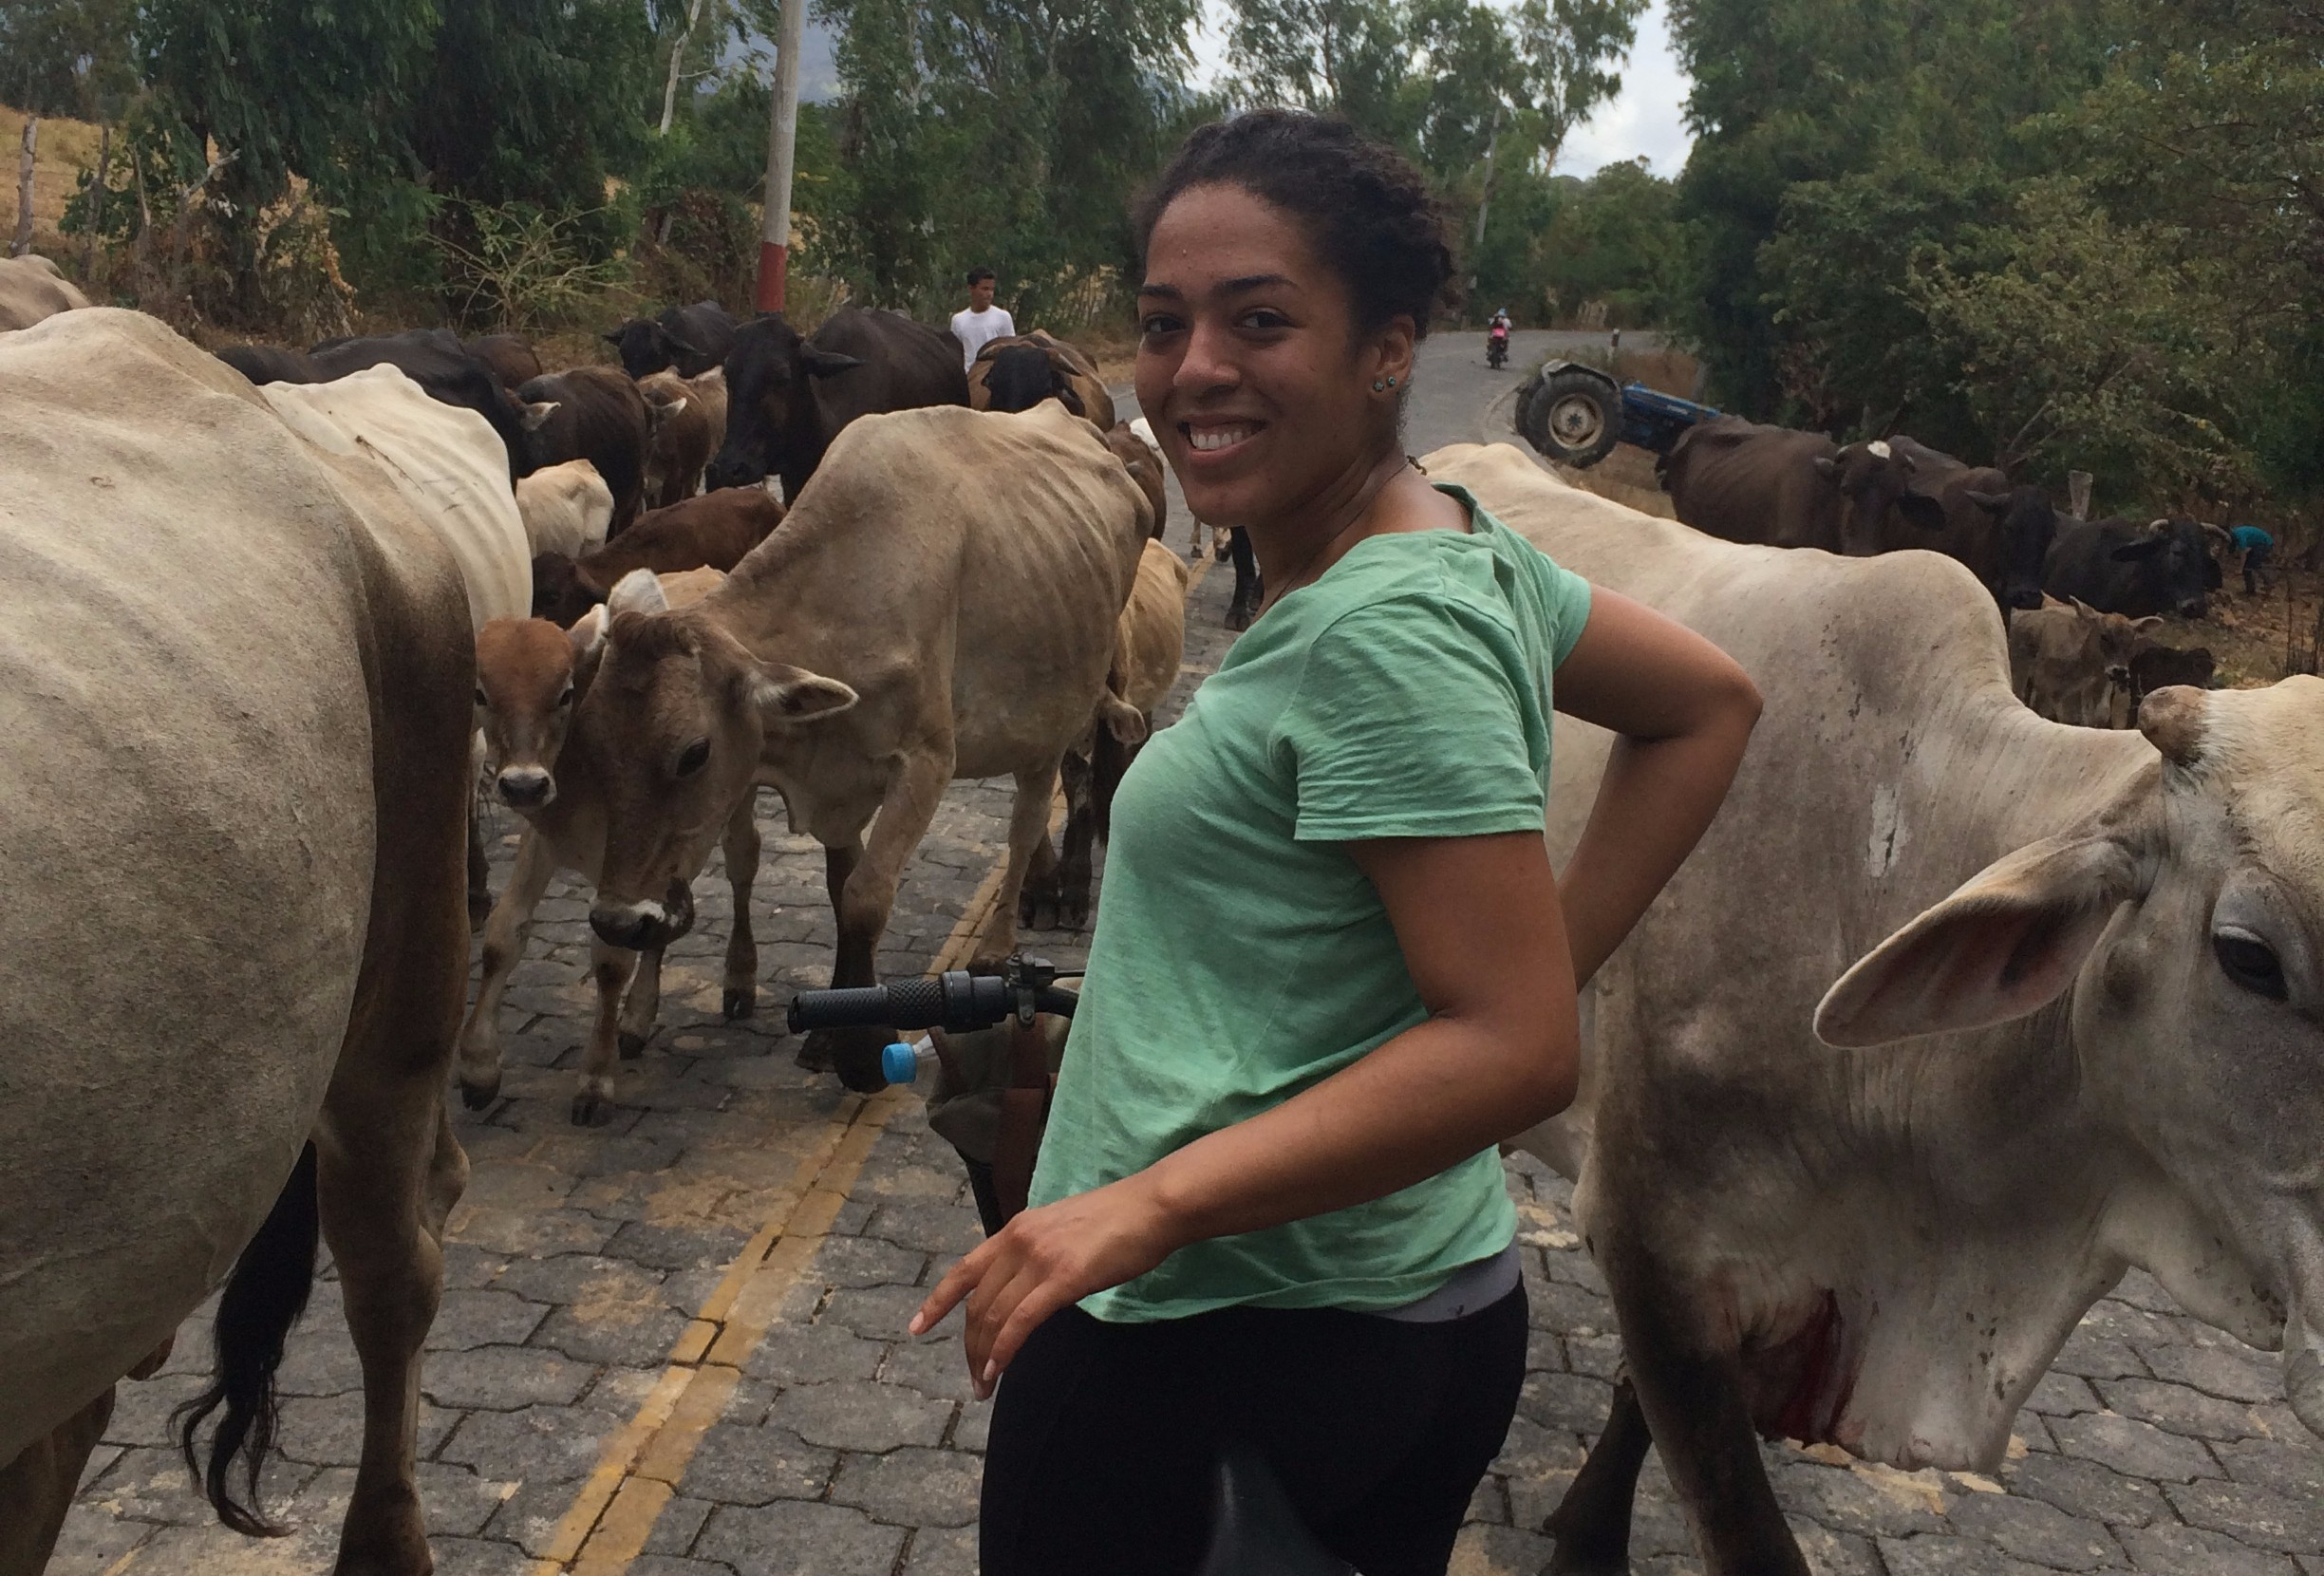 Student on bike in herd of cattle